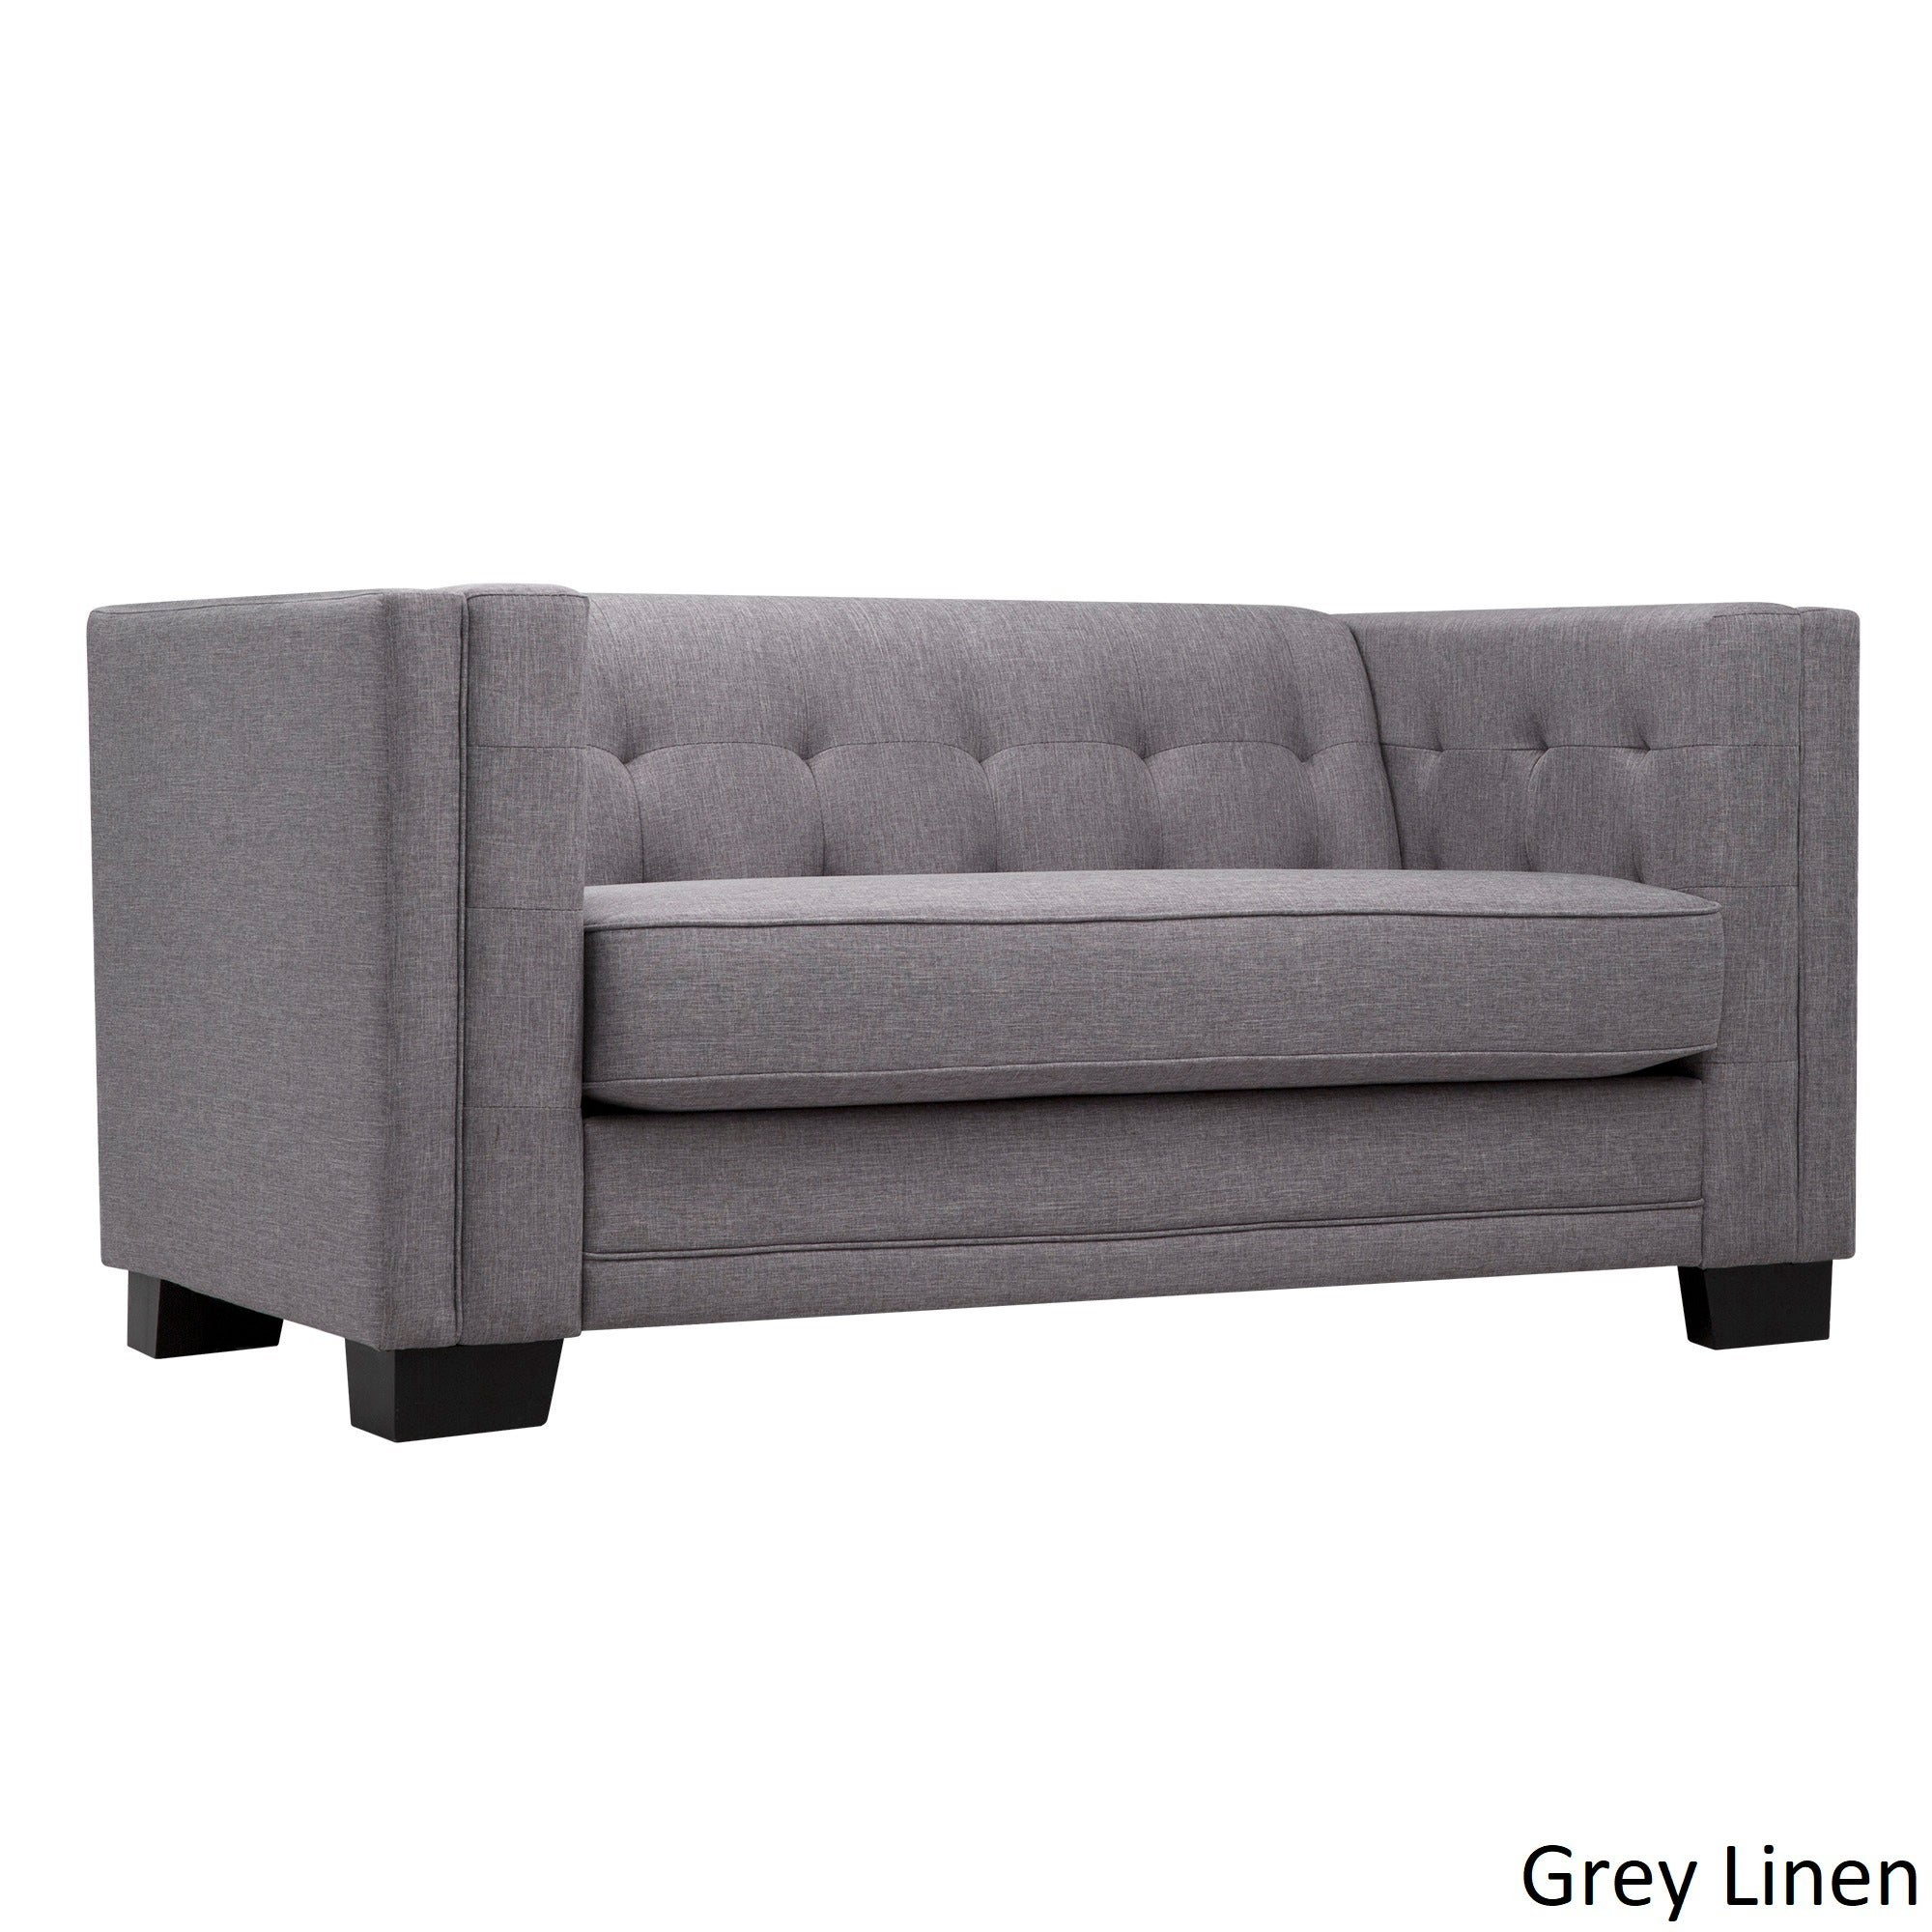 Pleasant Hamilton Linen Tufted Loveseat By Inspire Q Bold Gmtry Best Dining Table And Chair Ideas Images Gmtryco